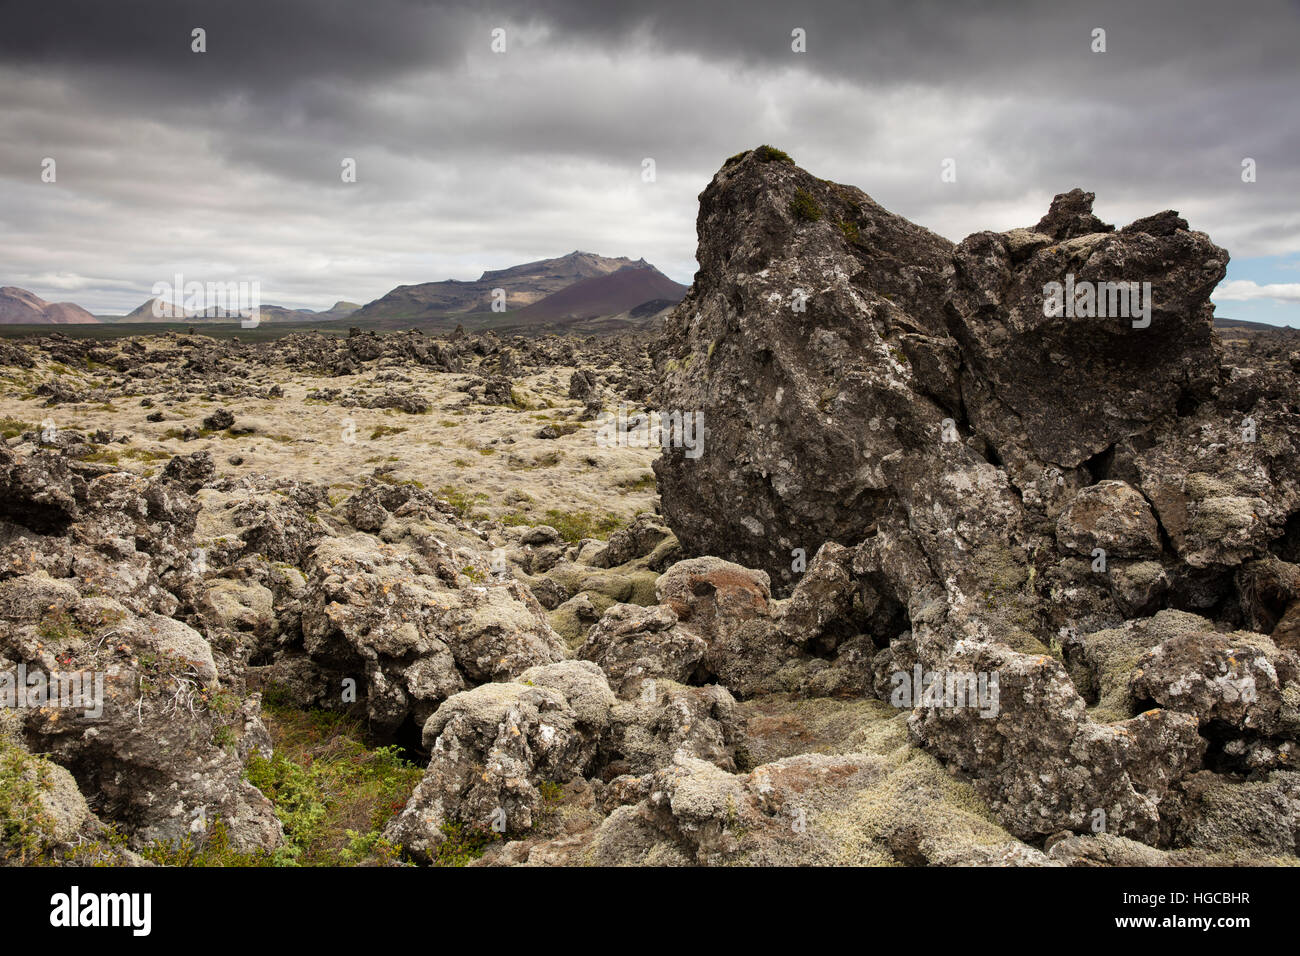 Lava field on the Snaefellsnes Peninsula, West Iceland. - Stock Image